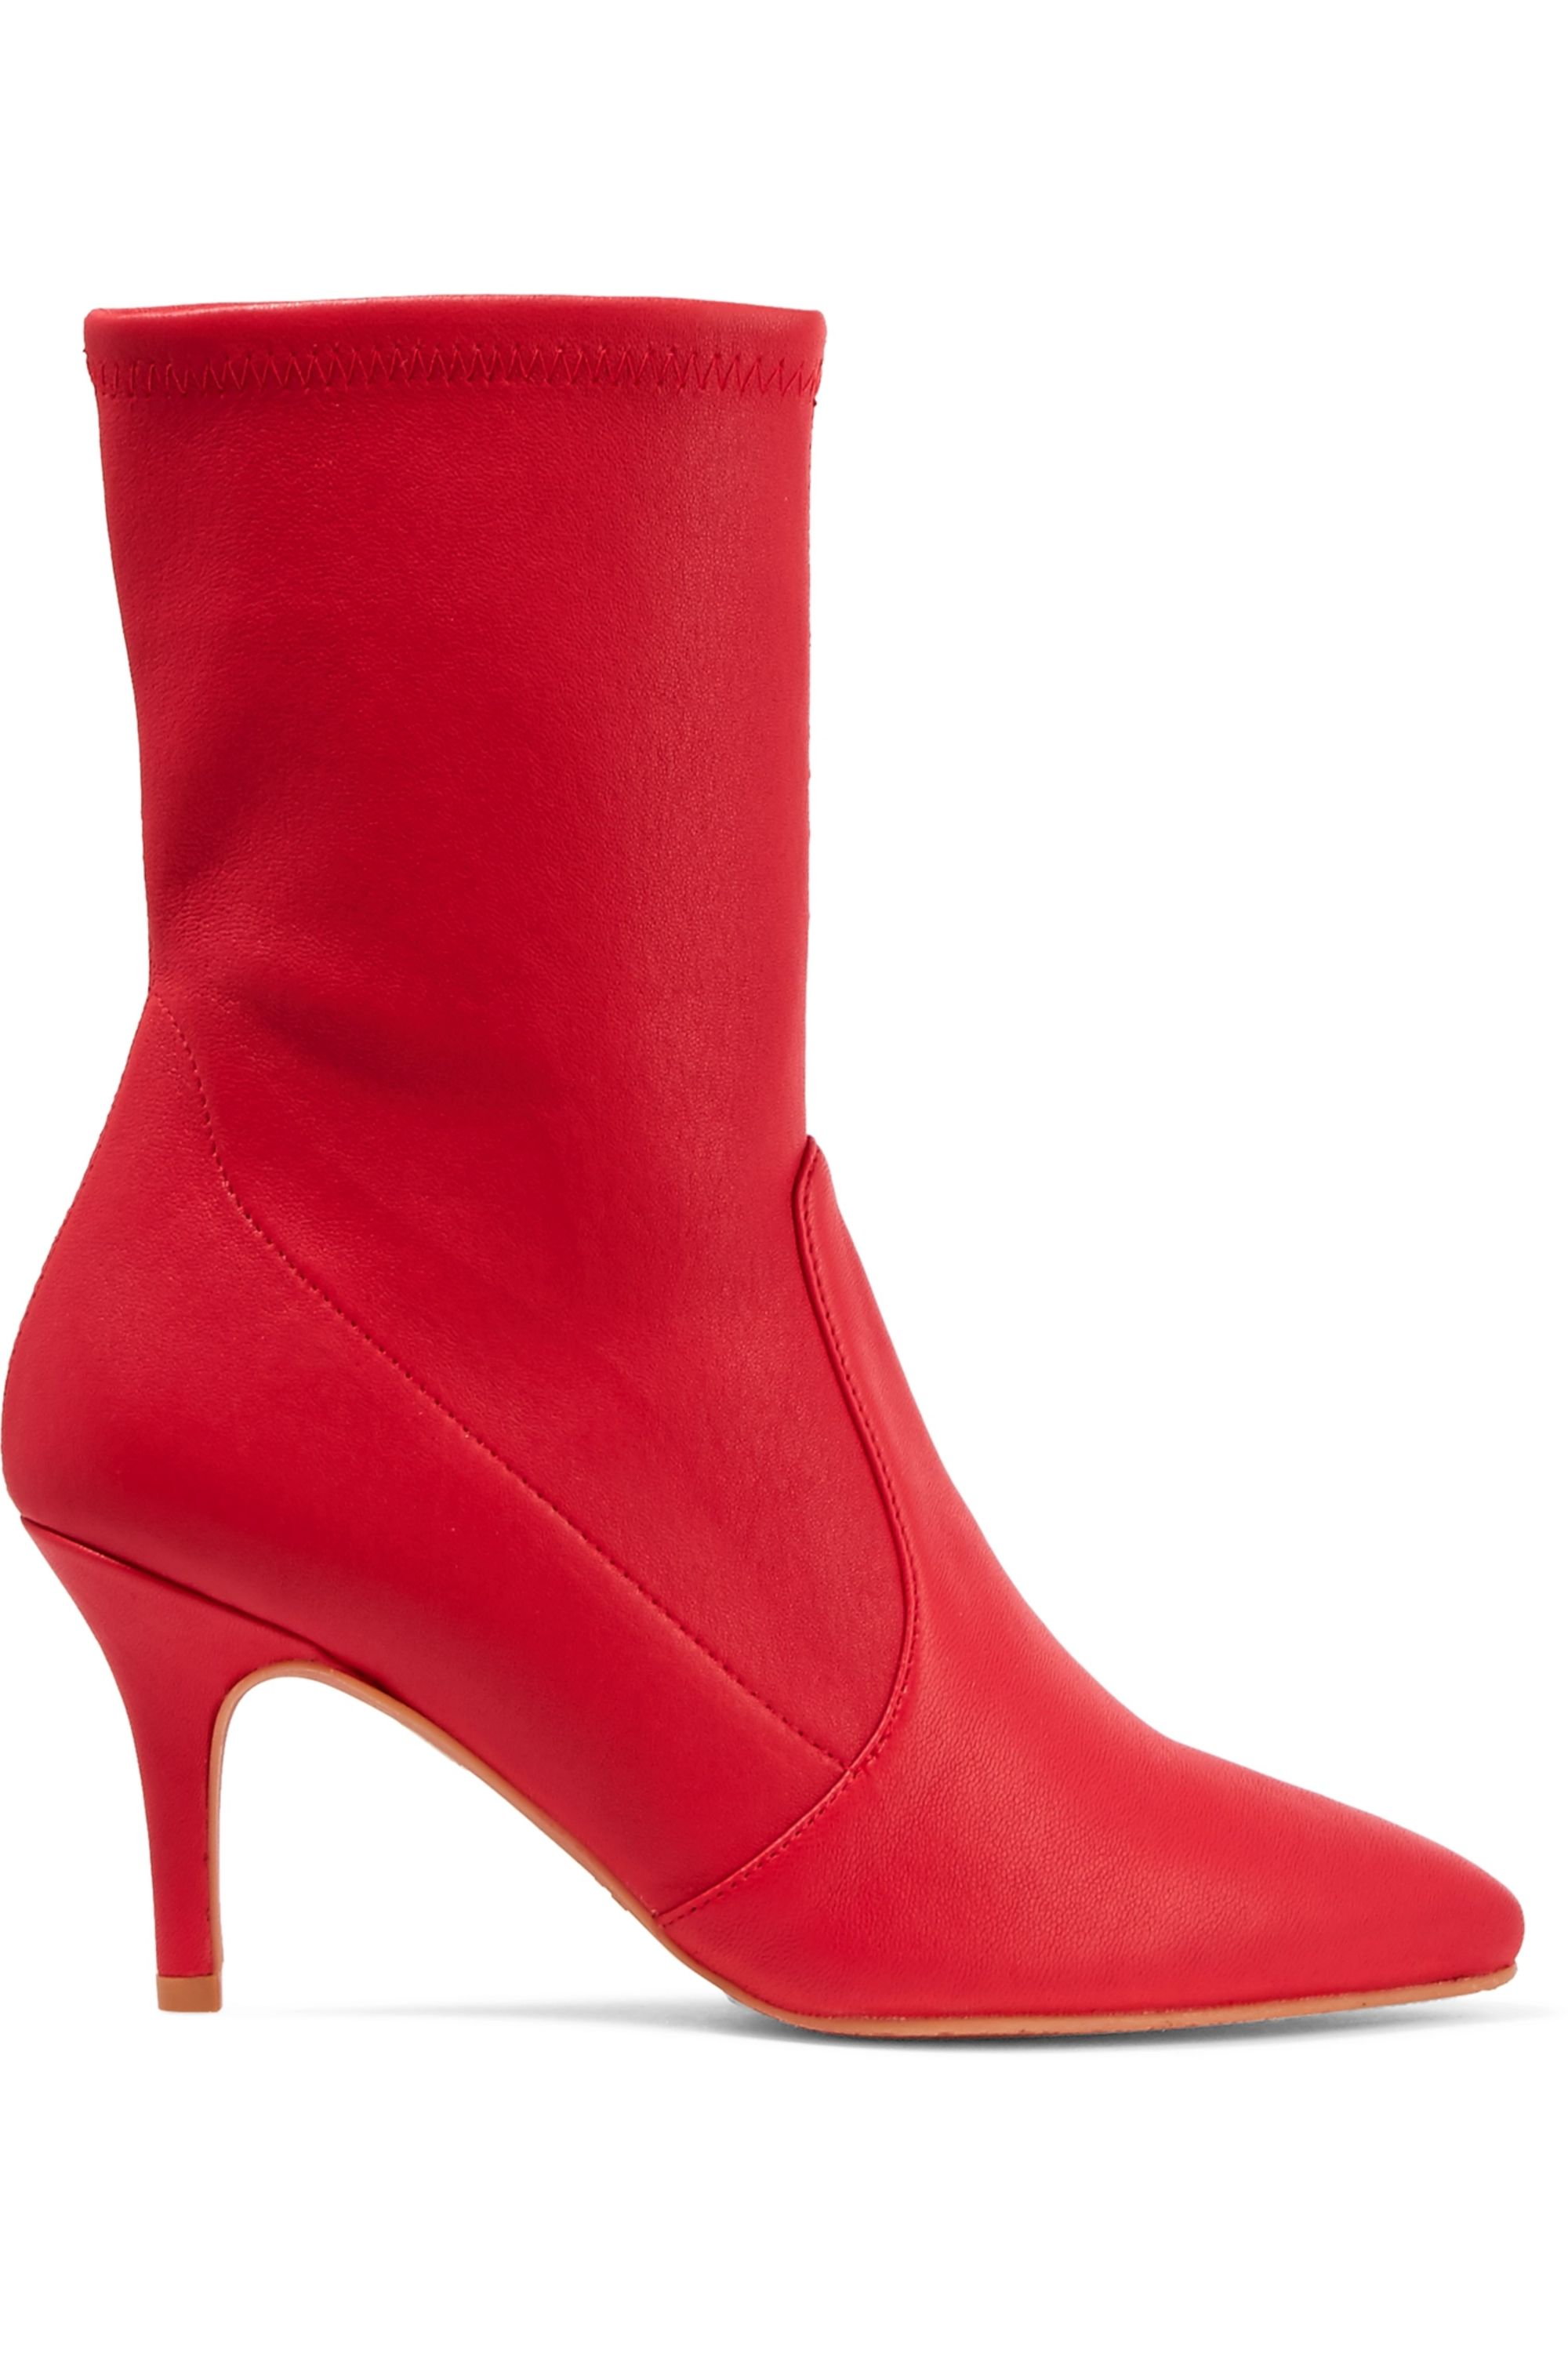 Red Cling leather sock boots | Stuart